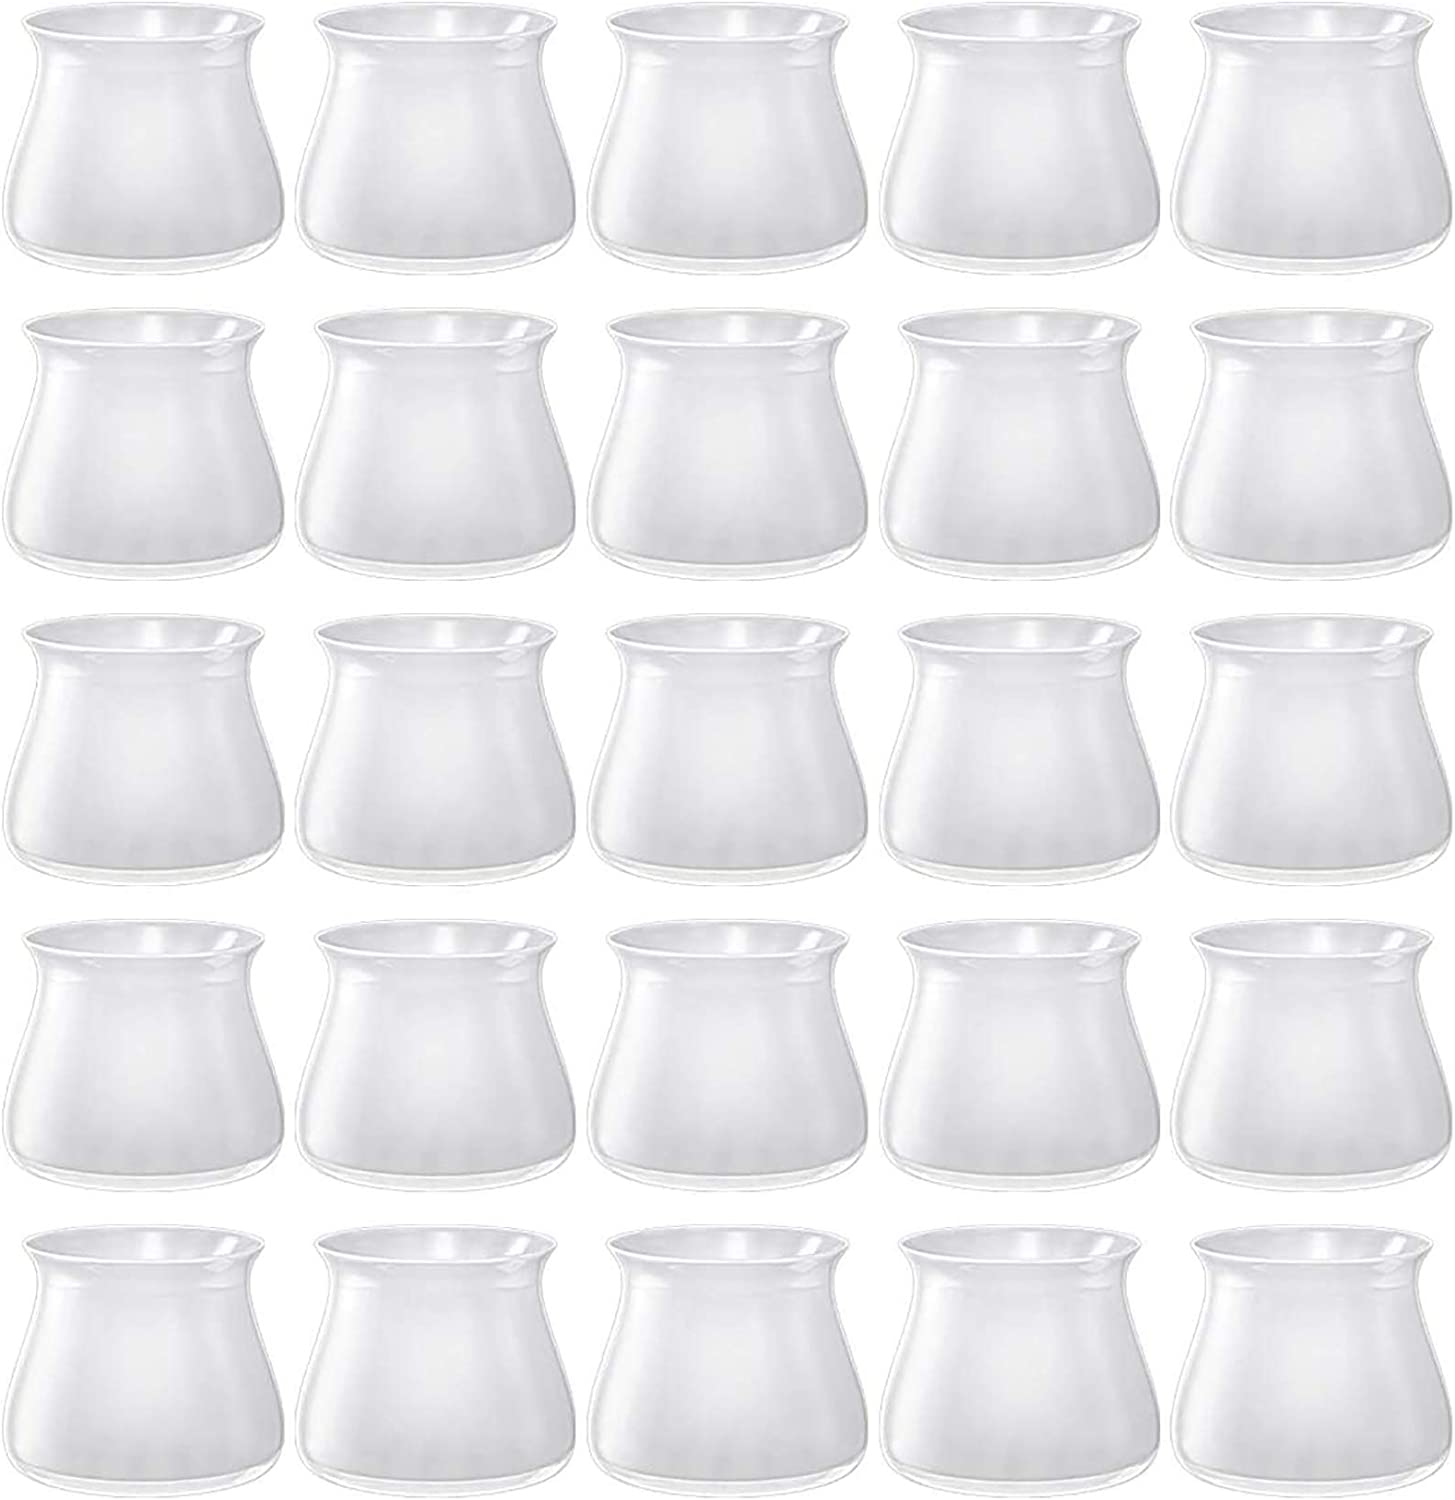 36 Pack Chair Leg Caps Floor Protectors, [Upgraded Version] Transparent Silicone Anti-Slip Chair Leg Pads Caps Cover, Round & Square Furniture Table Feet Covers, Prevent Scratches and Noise - Clear